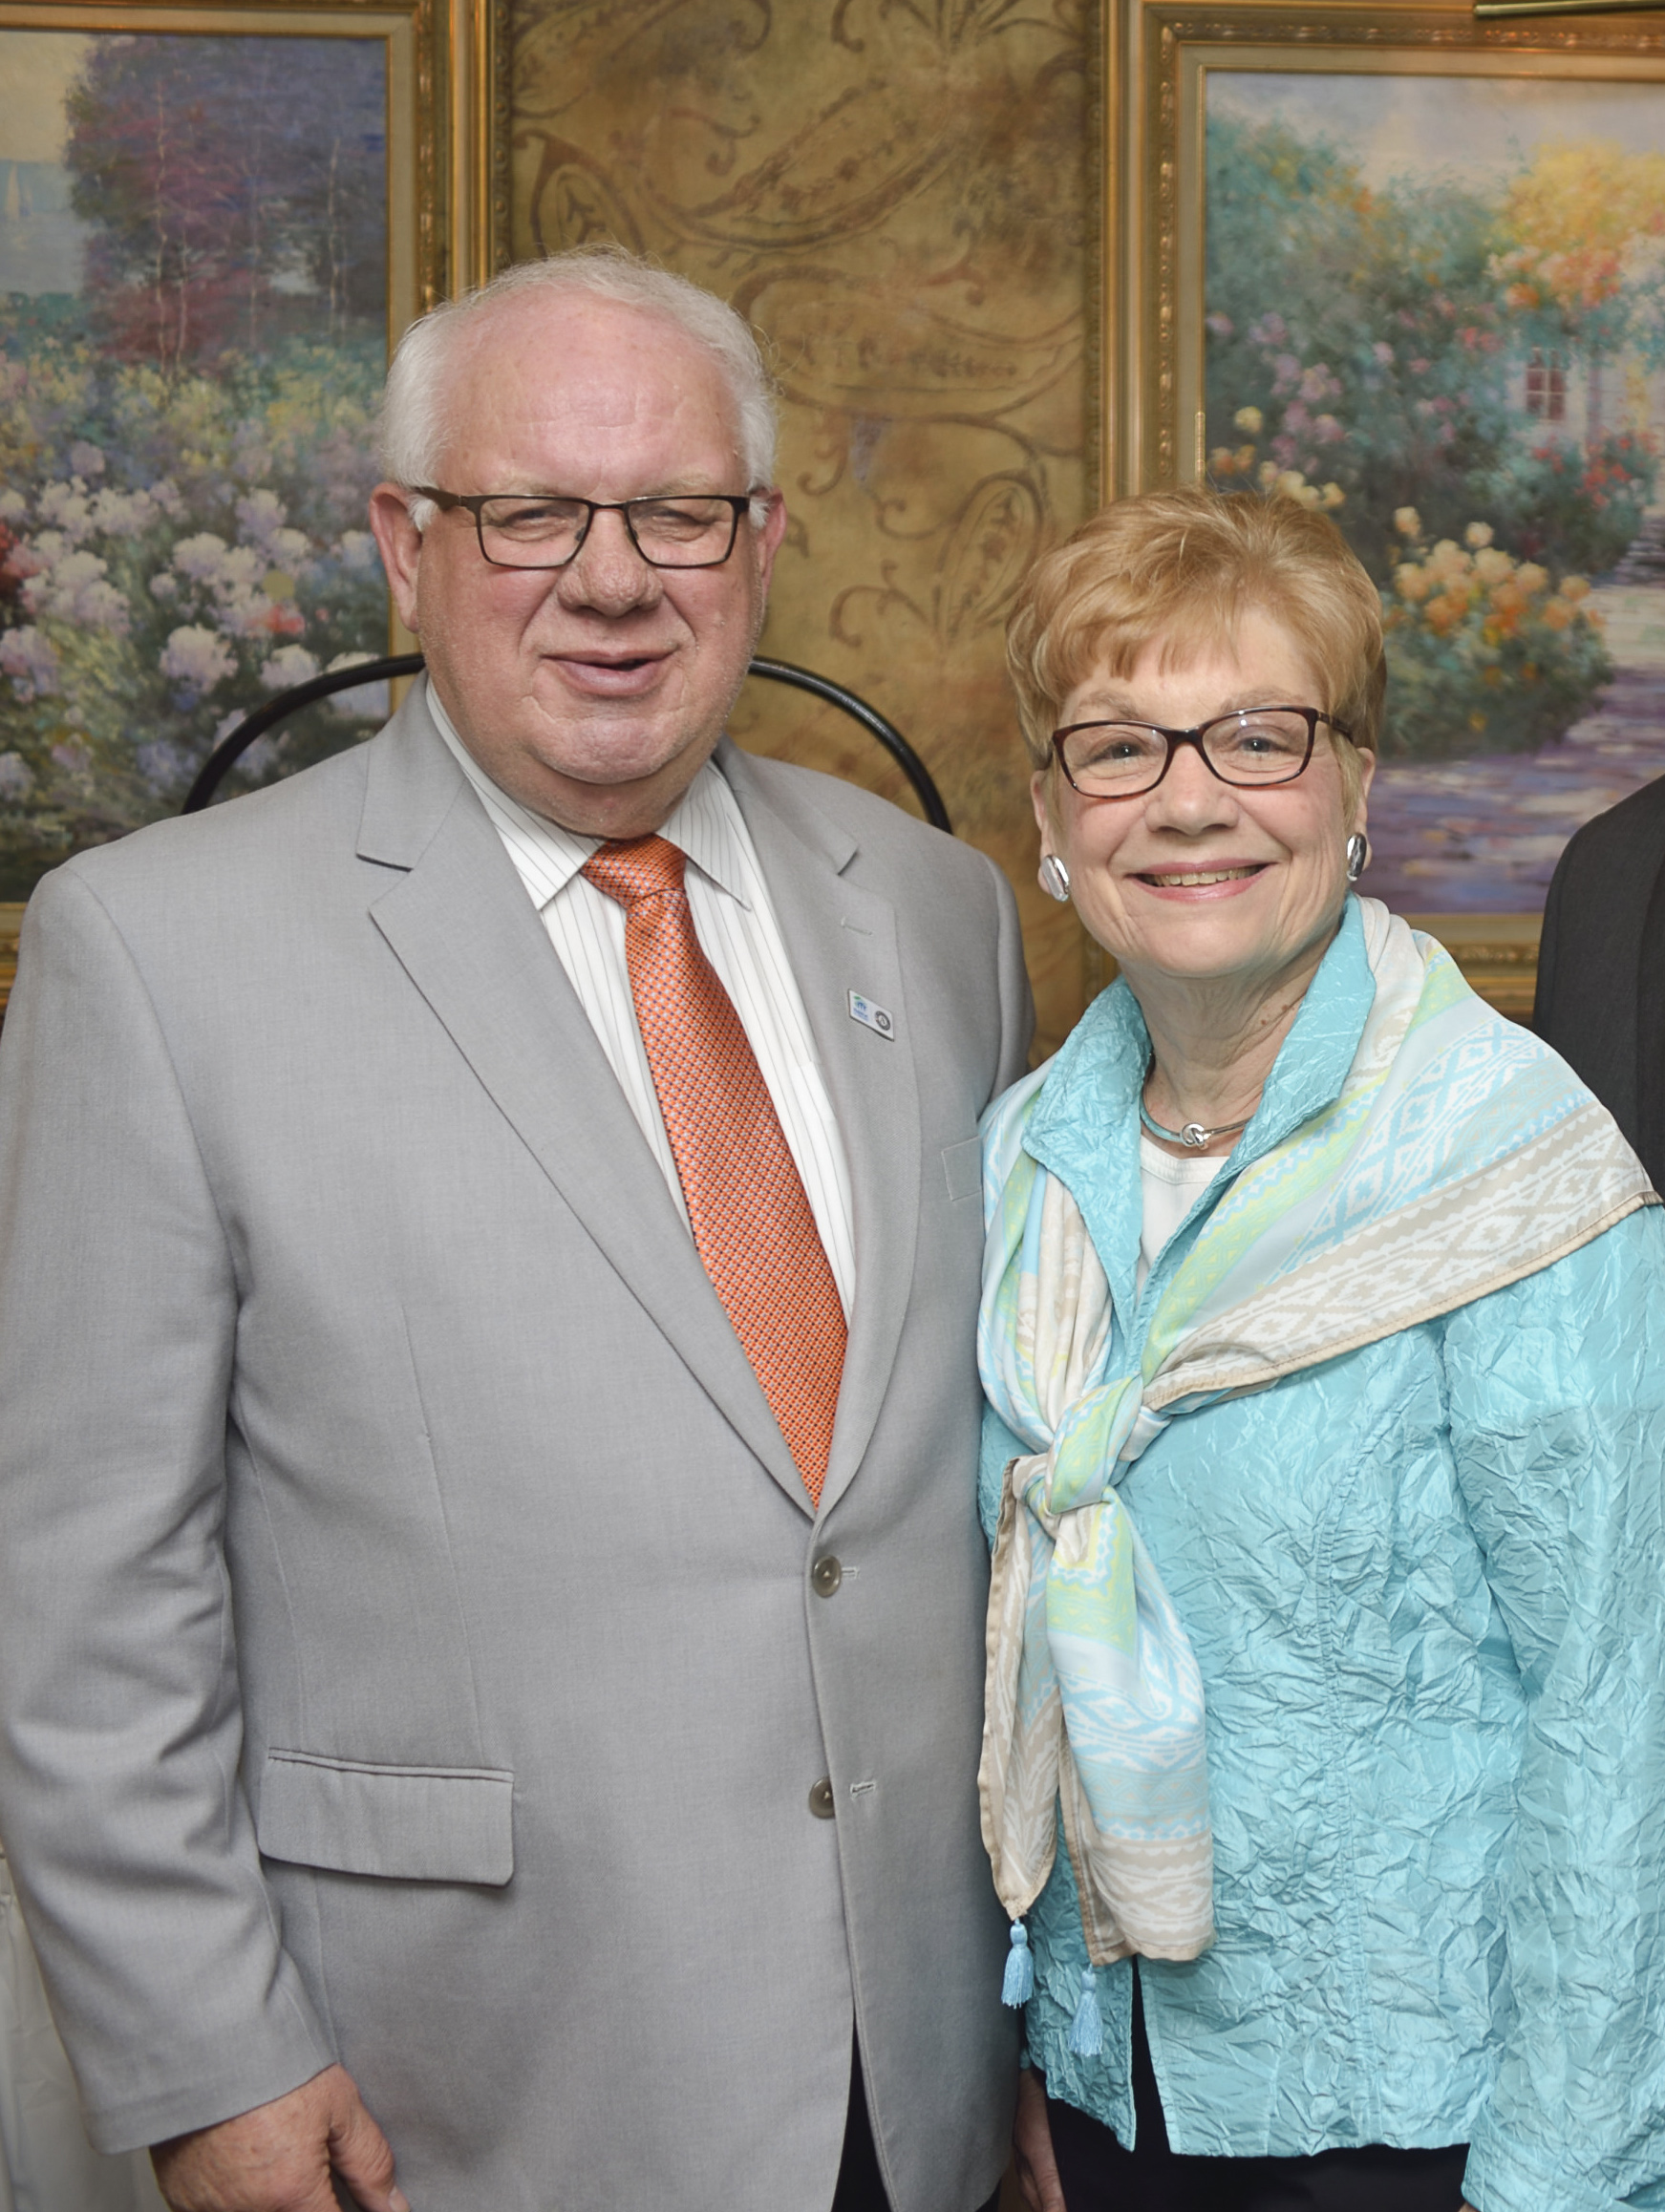 Gary and Barbara photo.jpg